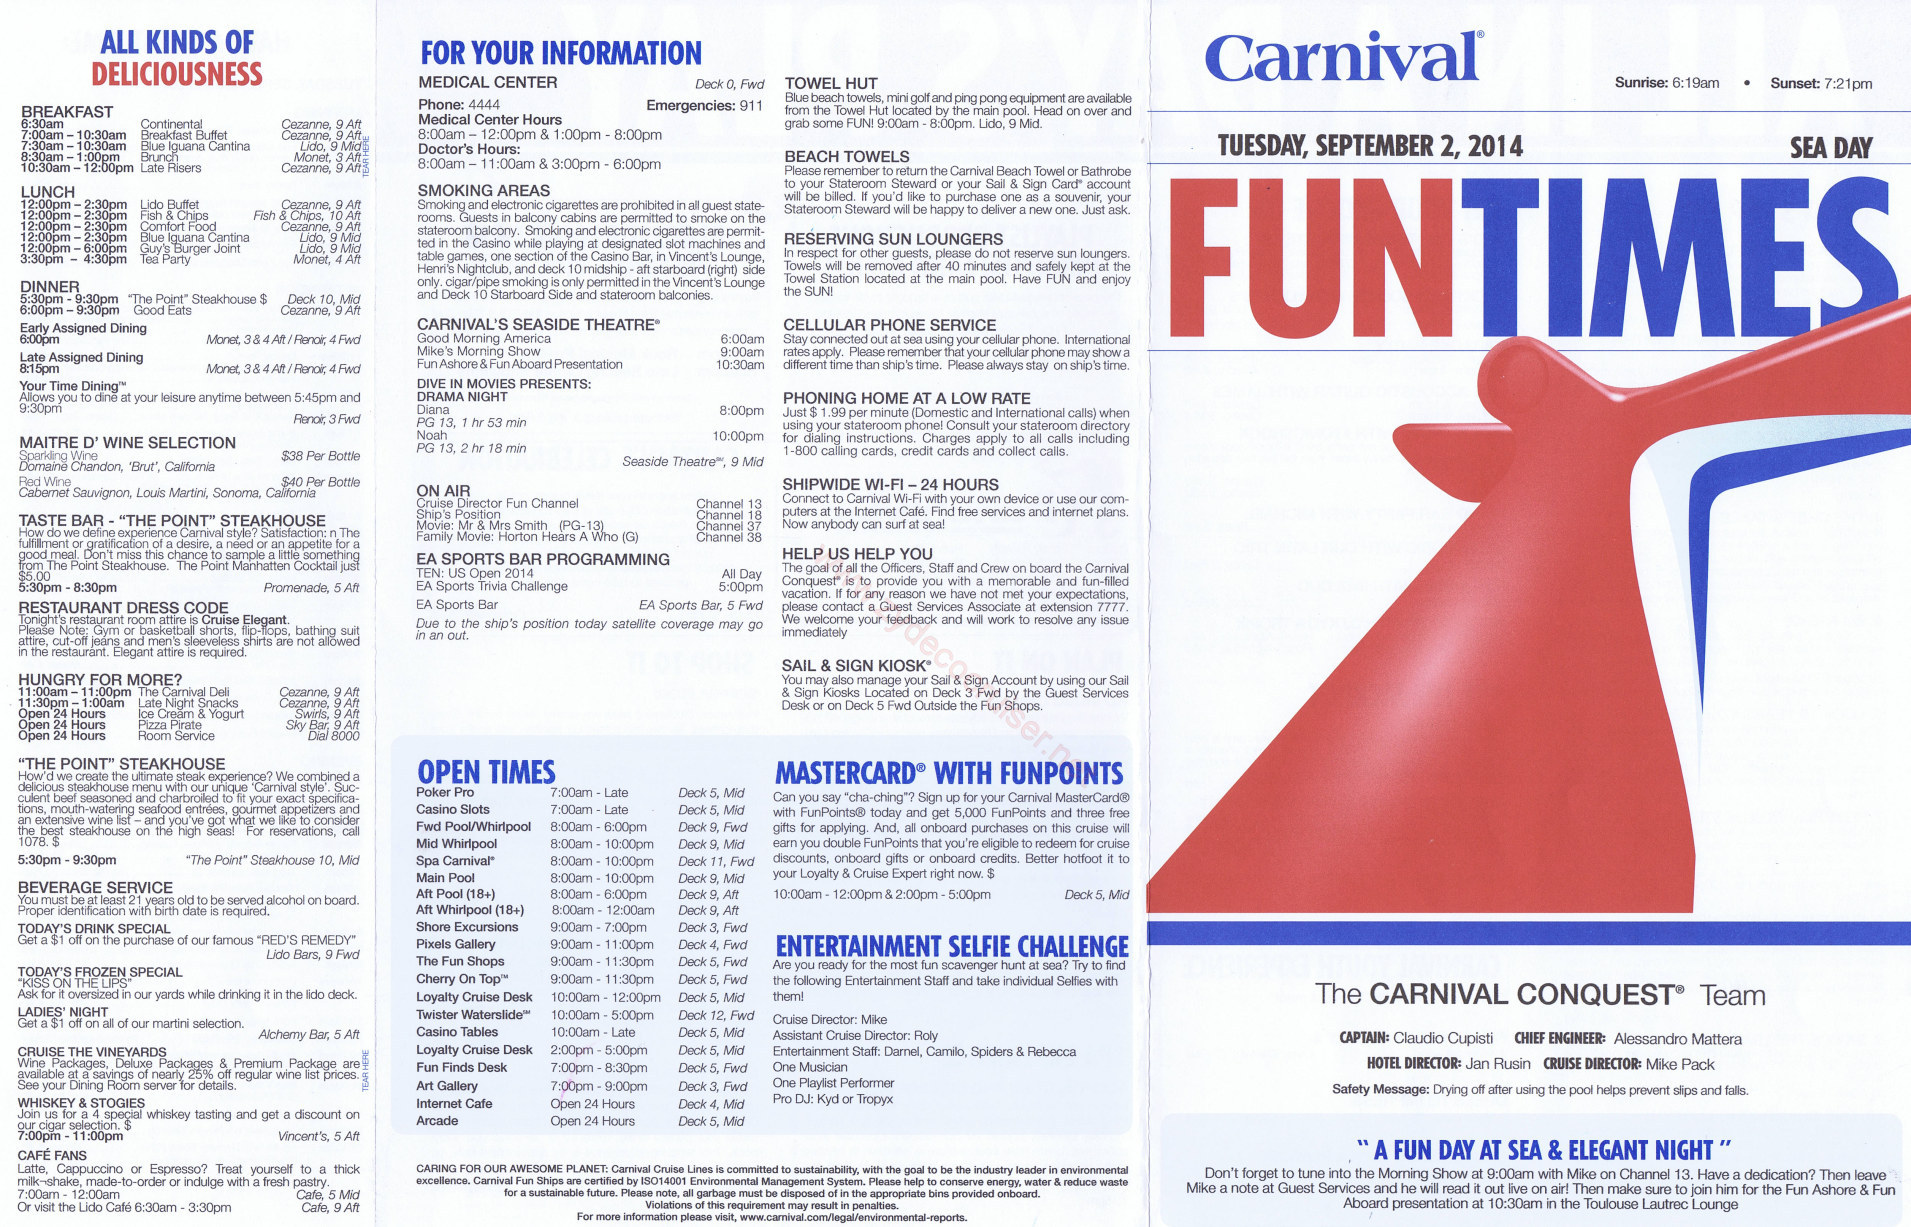 Carnival Conquest FunTimes Day 3 Sea Day Side 1